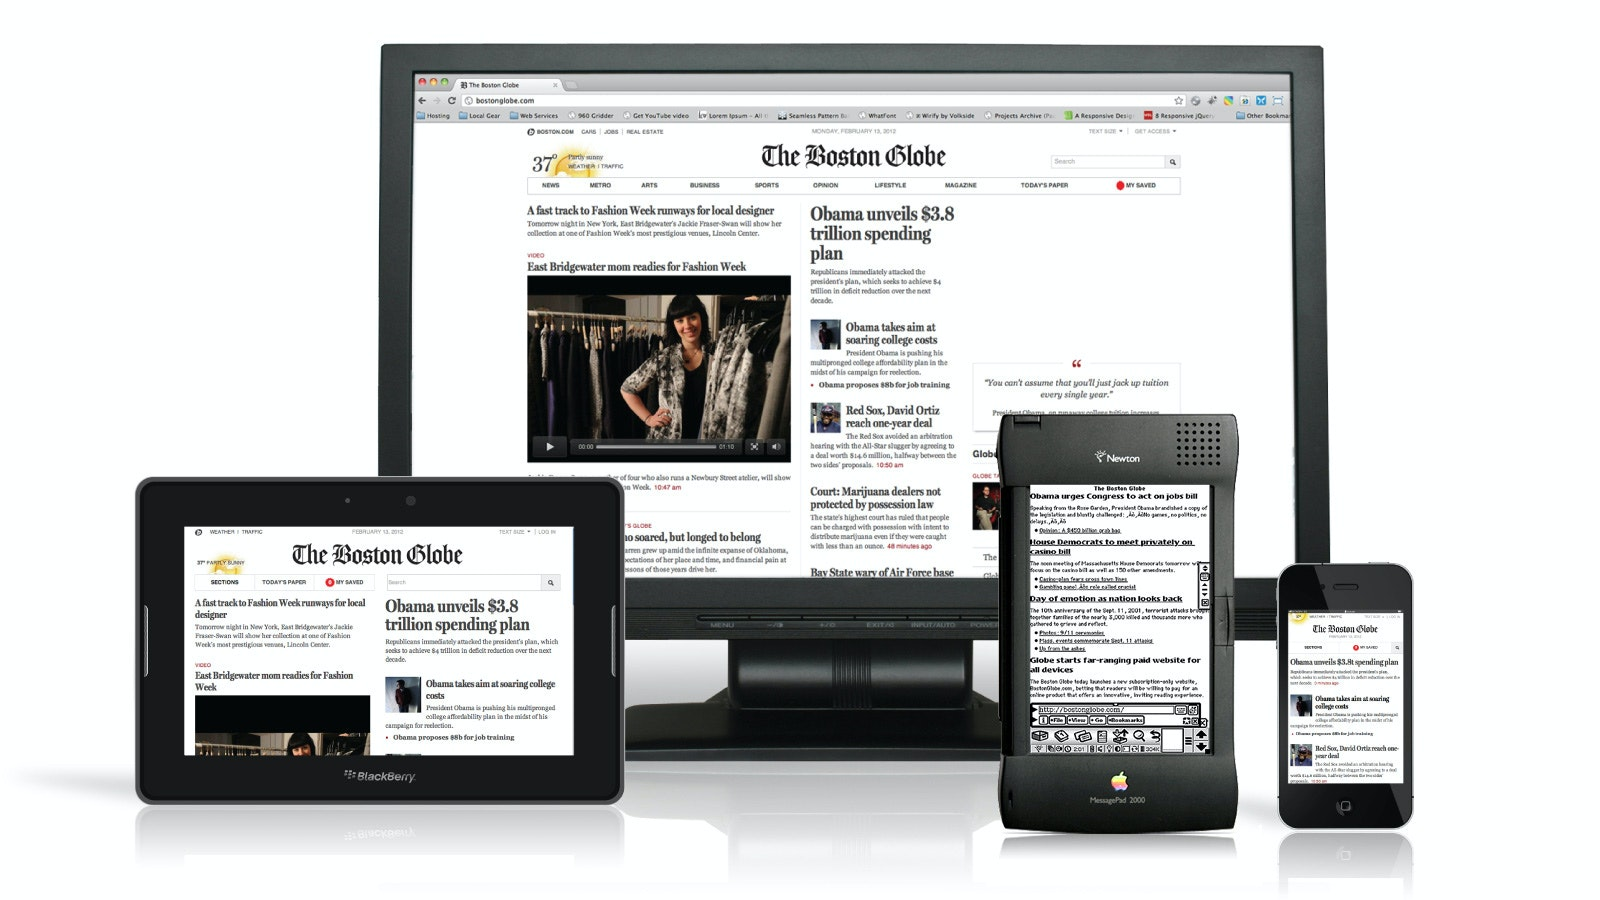 The Boston Globe website on all kinds of devices from desktop to mobile